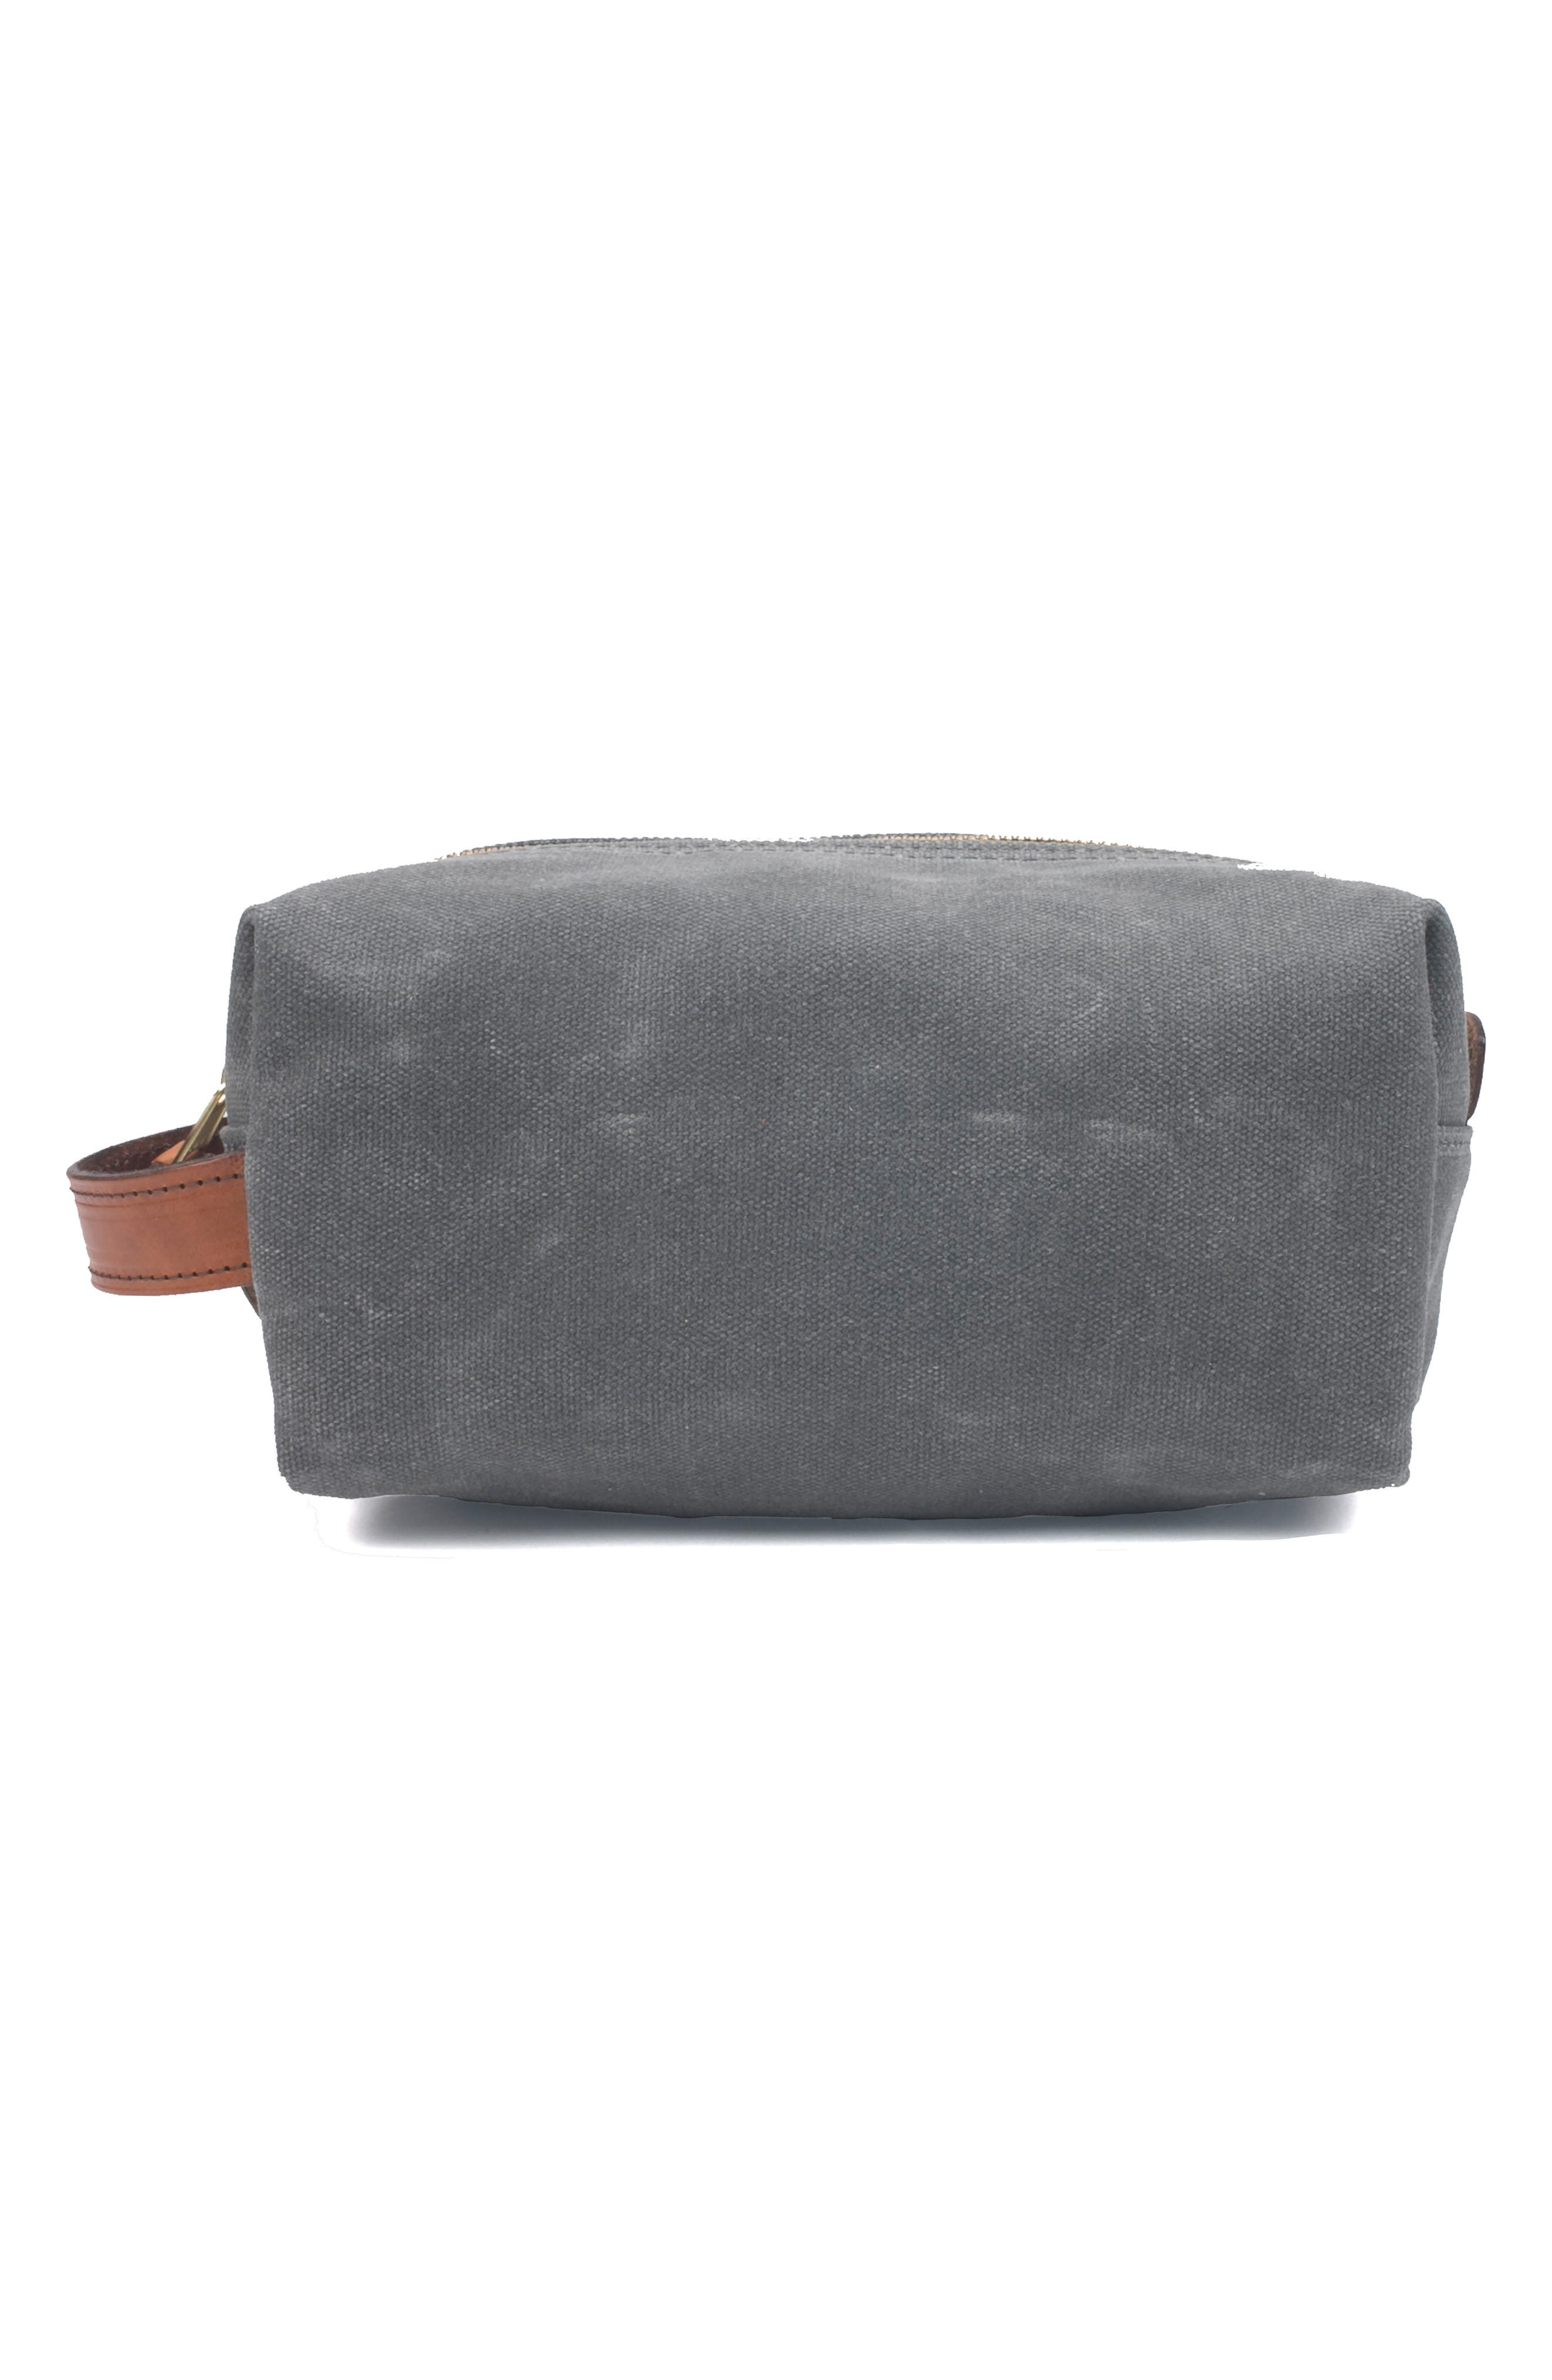 BOARDING PASS Gentle Reminder Dopp Kit in Charcoal